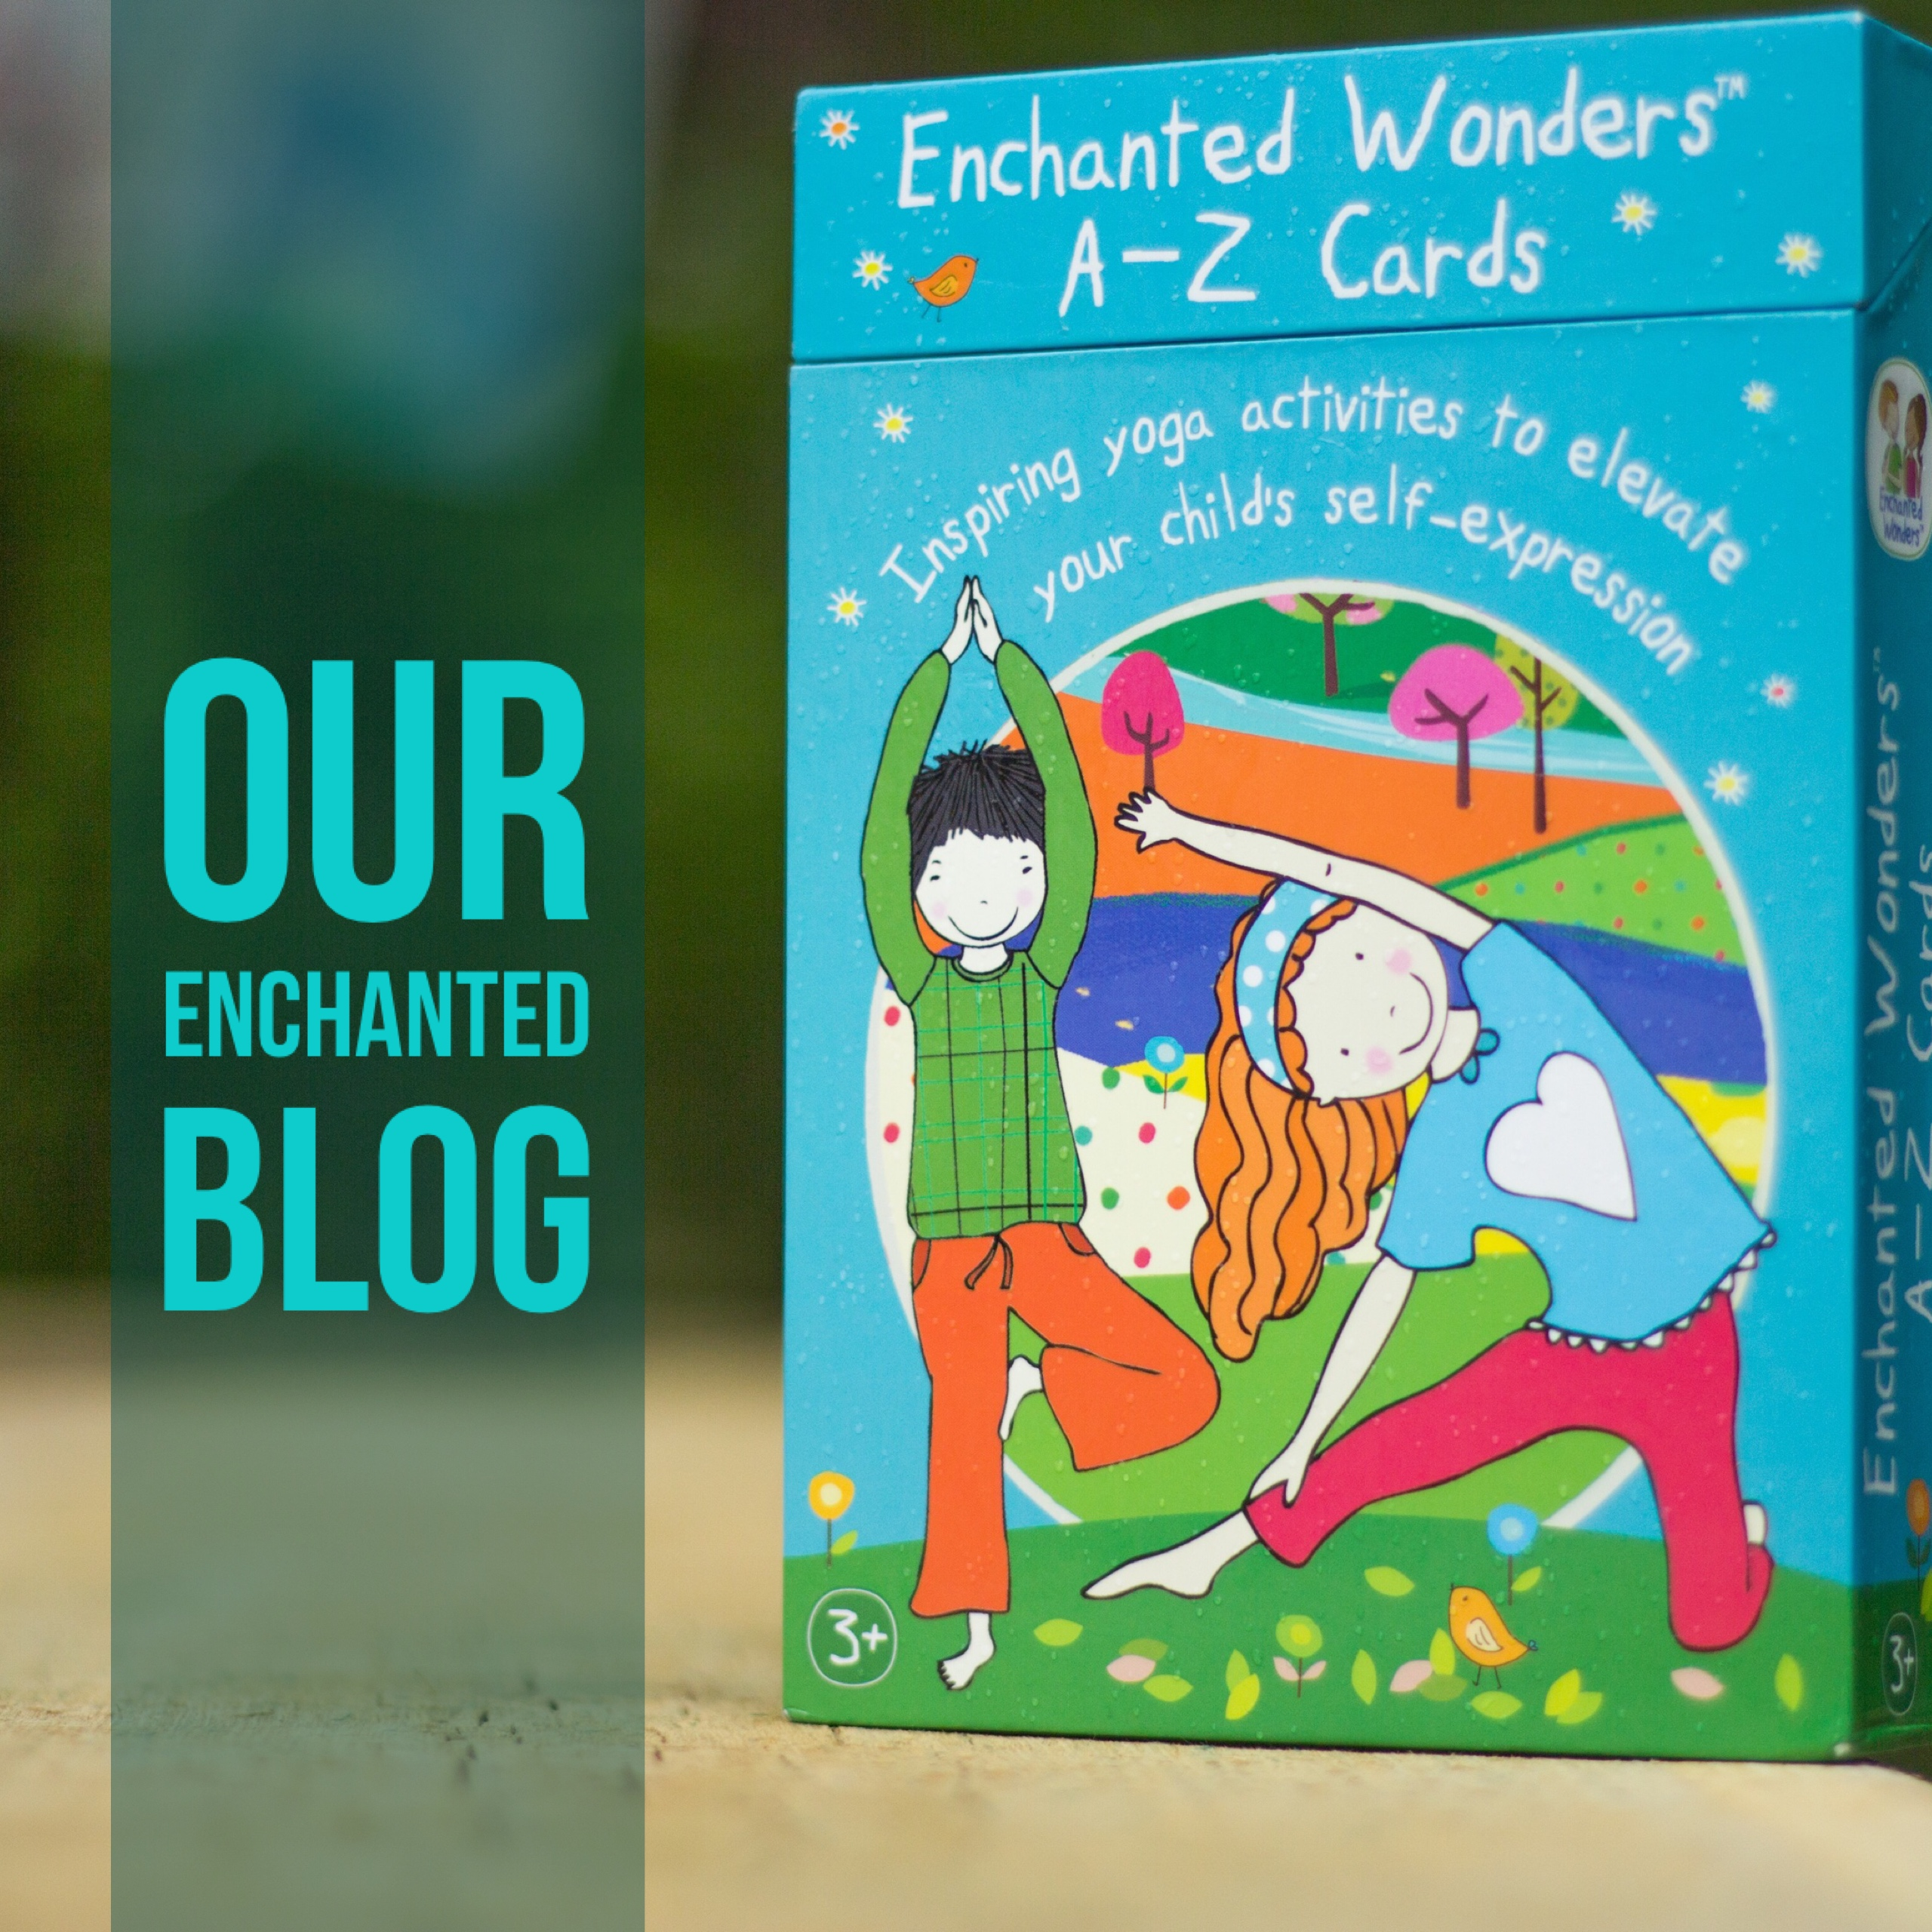 Our Enchanted Blog